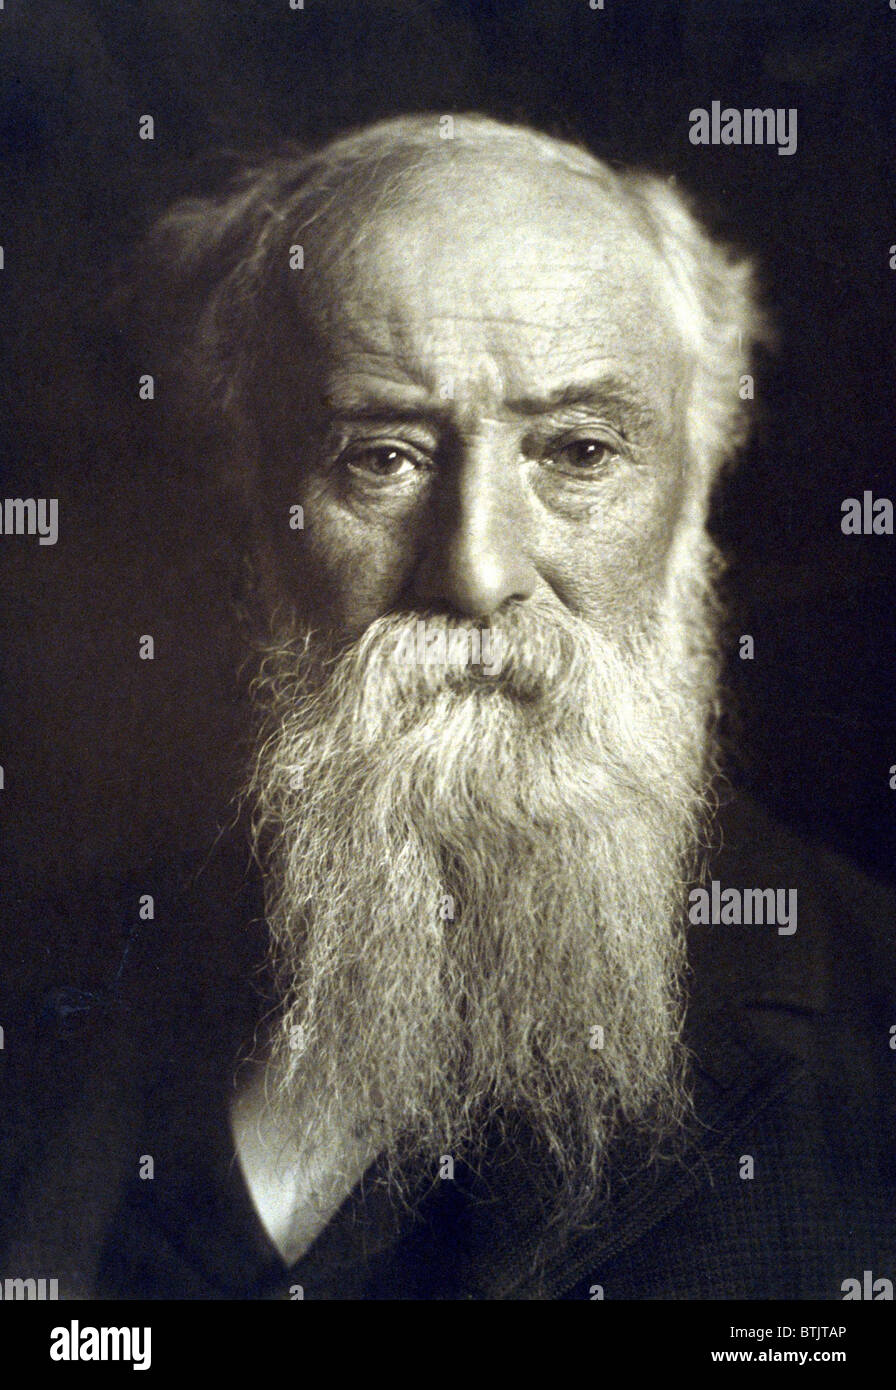 John Burroughs (1837-1921) wrote on nature subjects and inspired the early conservation - john-burroughs-1837-1921-wrote-on-nature-subjects-and-inspired-the-BTJTAP